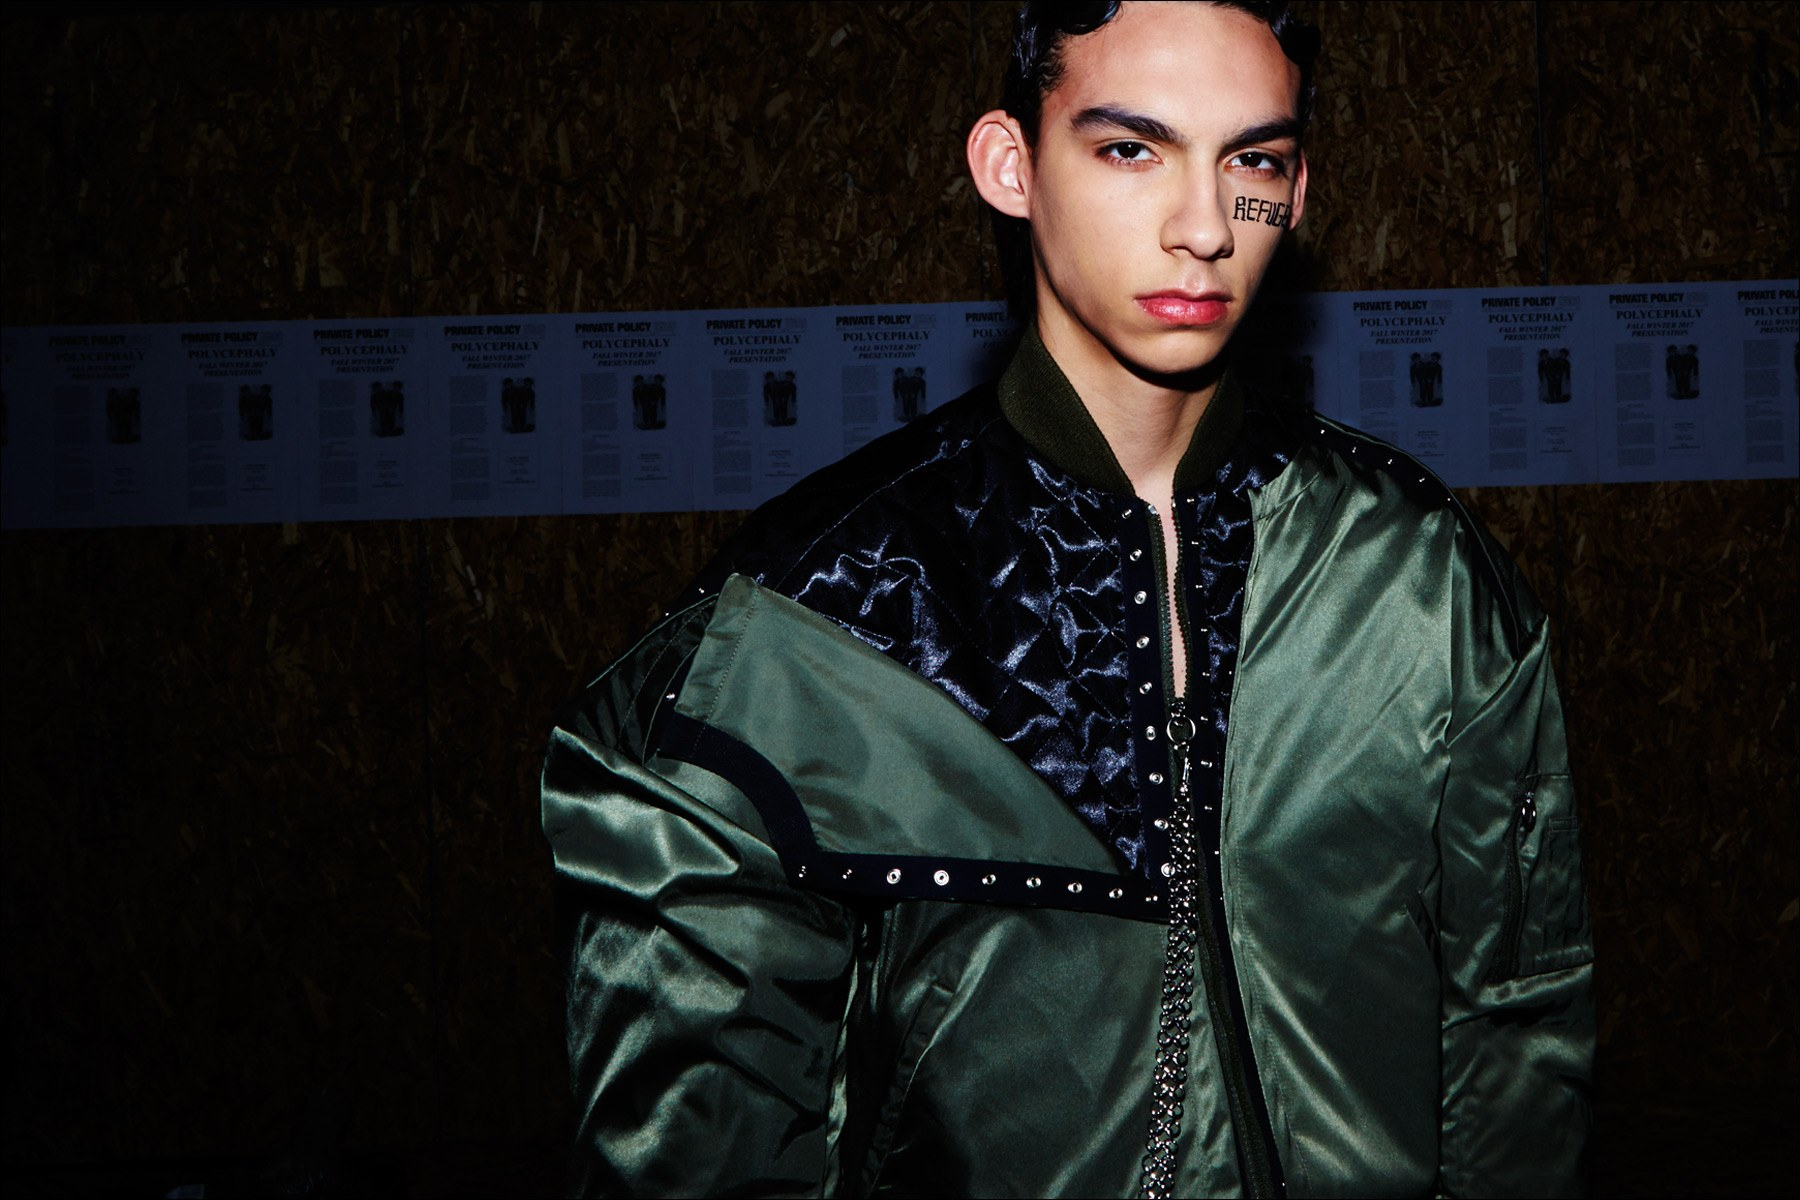 Male model Damien Medina in a satin bomber jacket, backstage before the Private Policy F/W17 menswear presentation. Photography by Alexander Thompson for Ponyboy magazine NY.